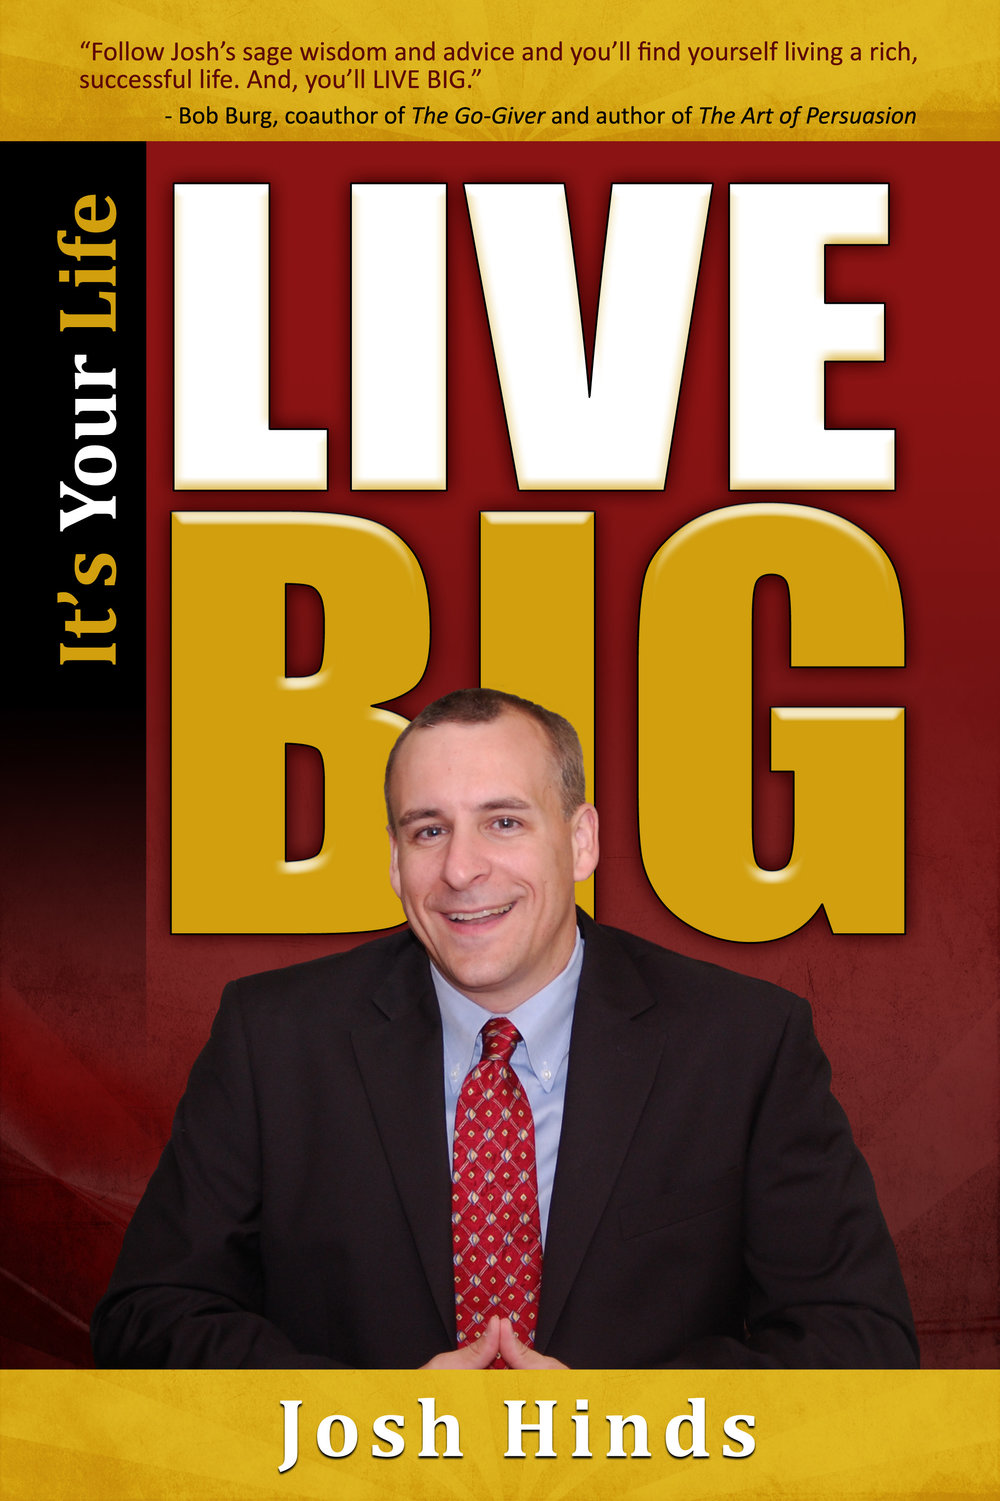 It's Your Life, Live BIG - Josh Hinds